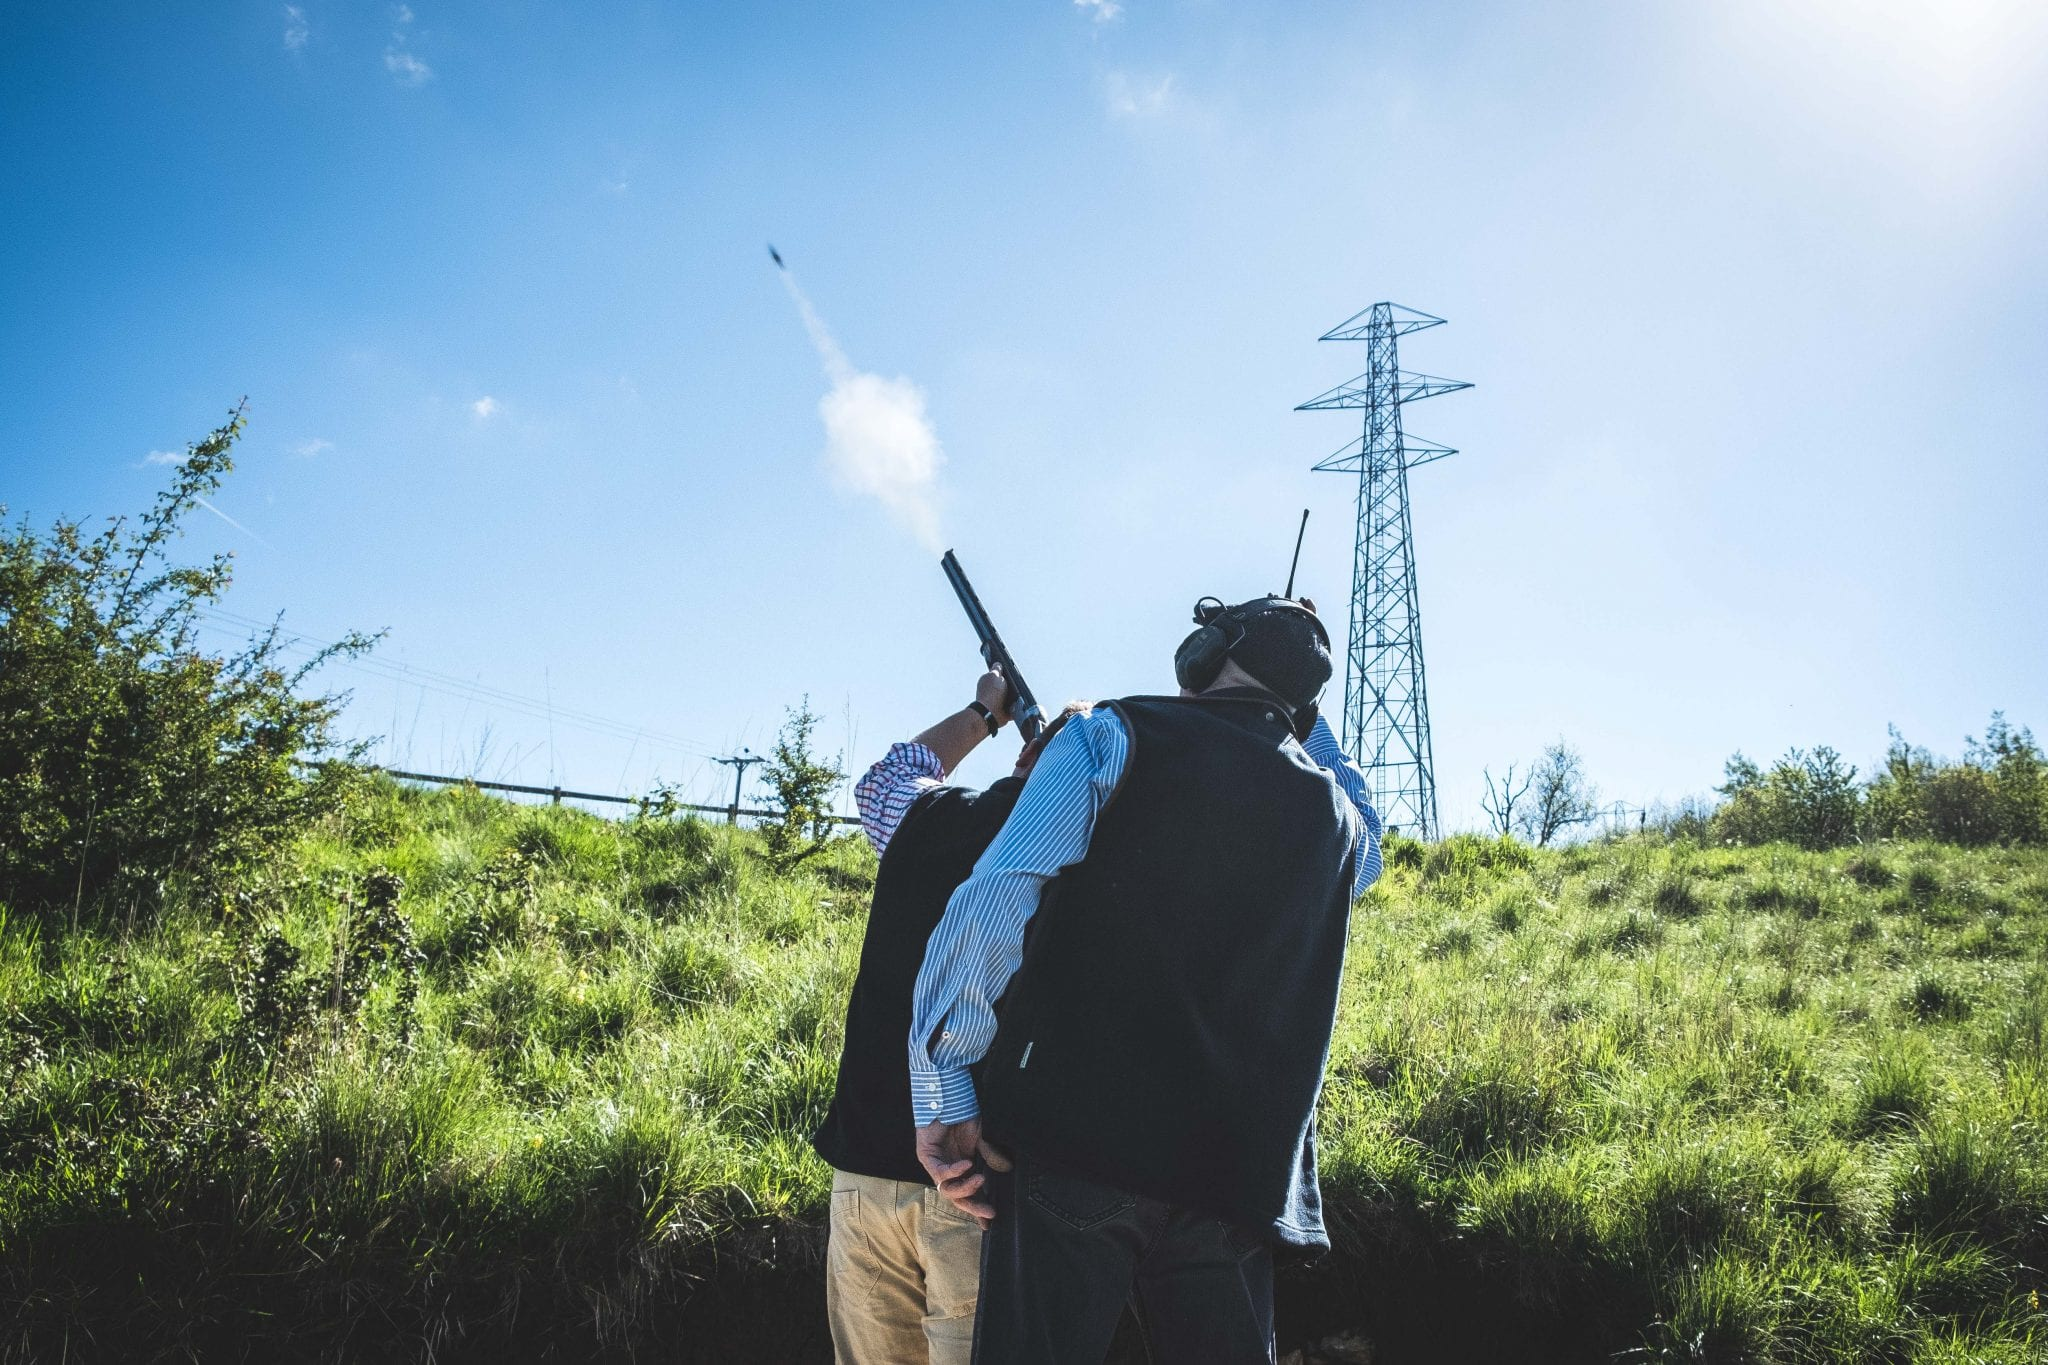 High pheasant shooting at the Lady's Wood Extreme Tower